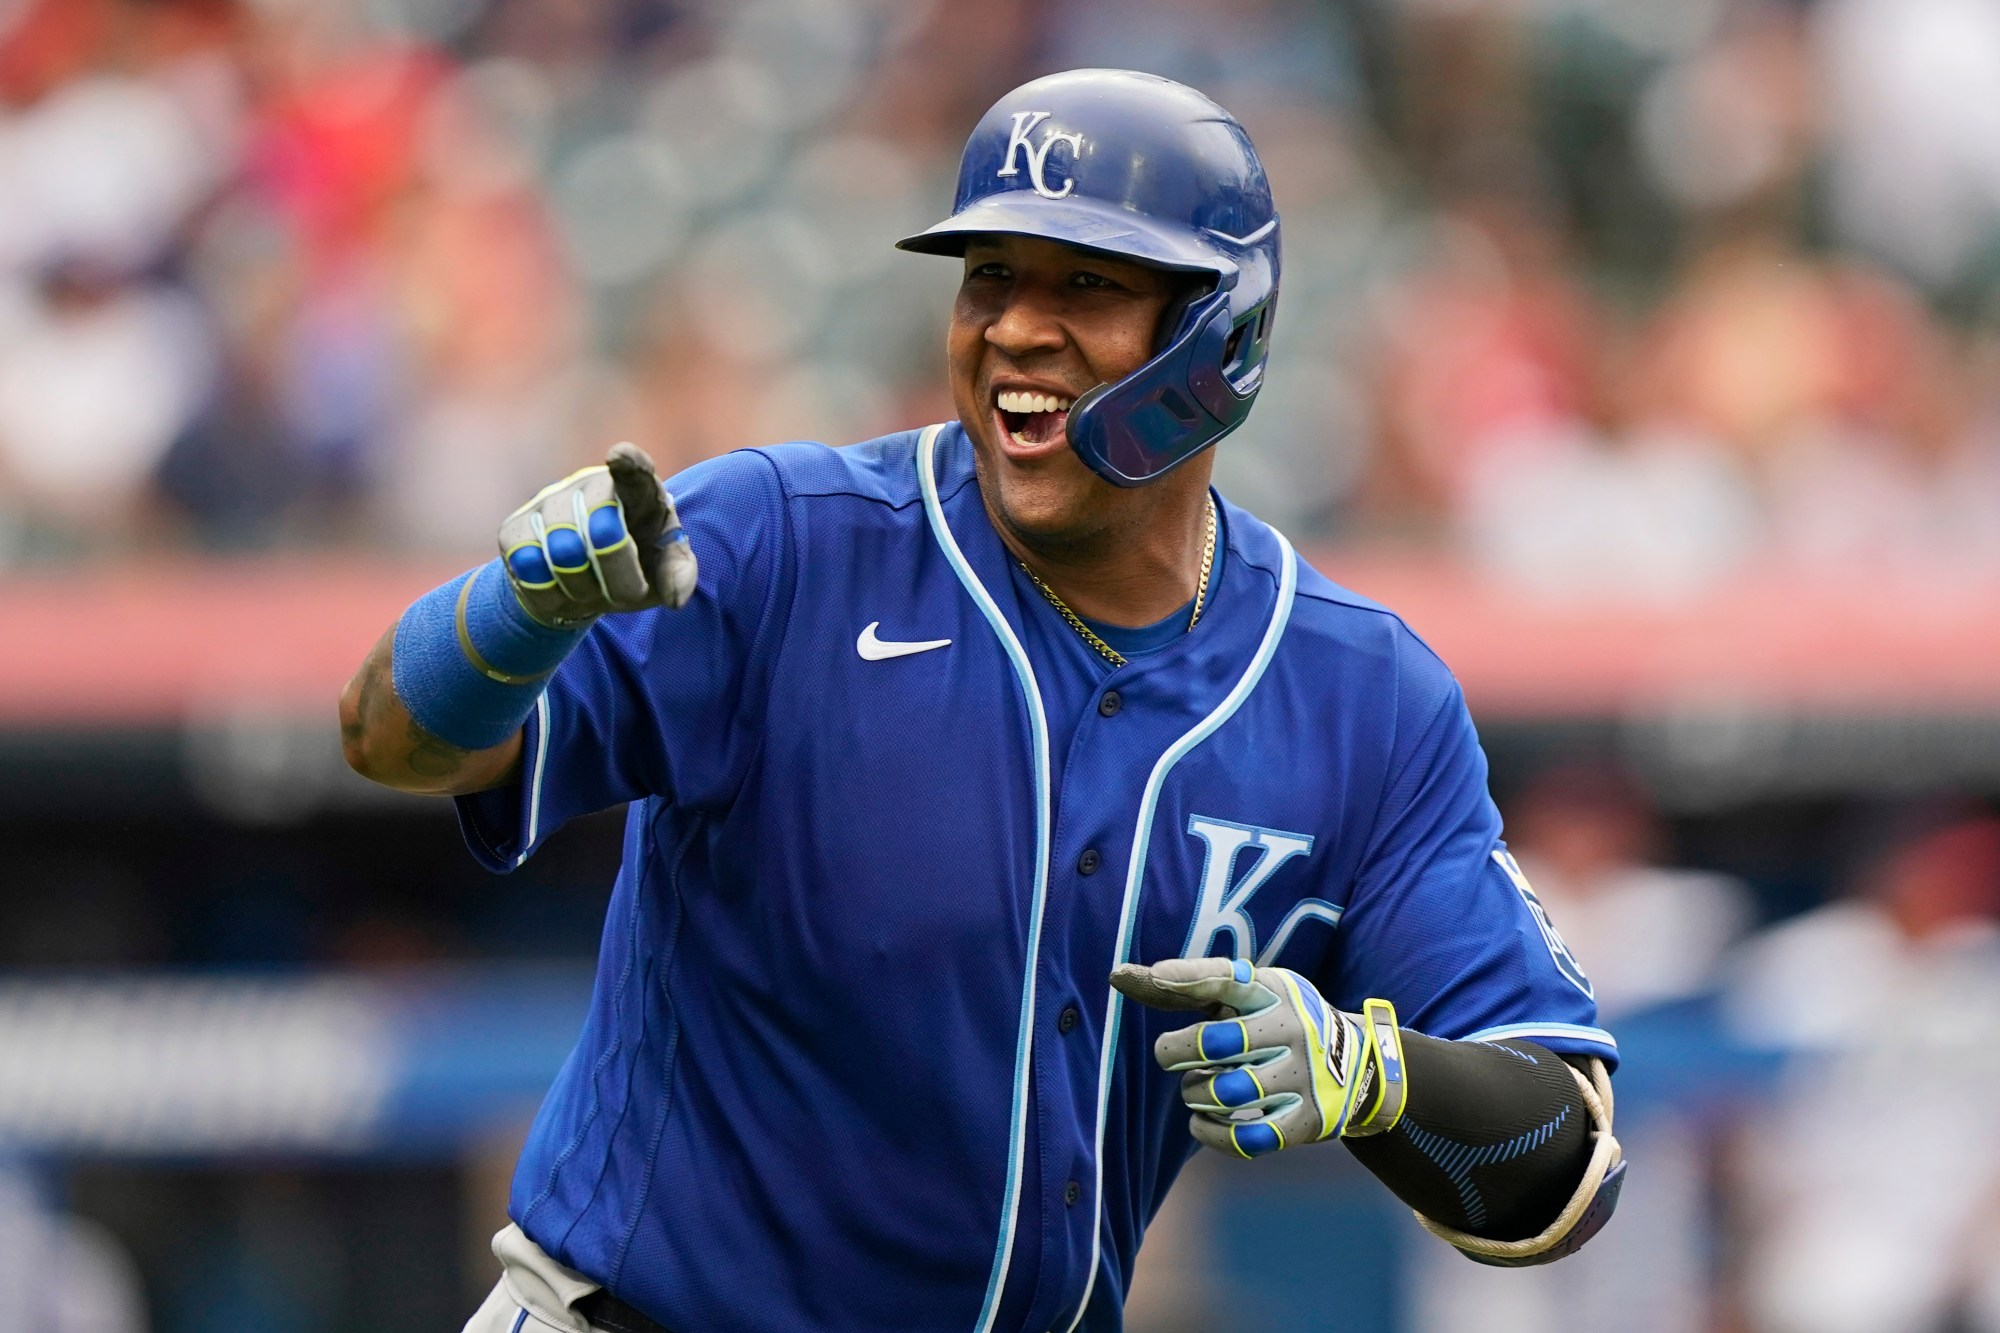 Kansas City Royals' Salvador Perez smiles and points to the dugout after hitting a two-run home run in the fifth inning in the first baseball game of a doubleheader against the Cleveland Indians, Monday, Sept. 20, 2021, in Cleveland. The home run broke Johnny Bench's record for the most home runs in a season by a primary catcher. (AP Photo/Tony Dejak)